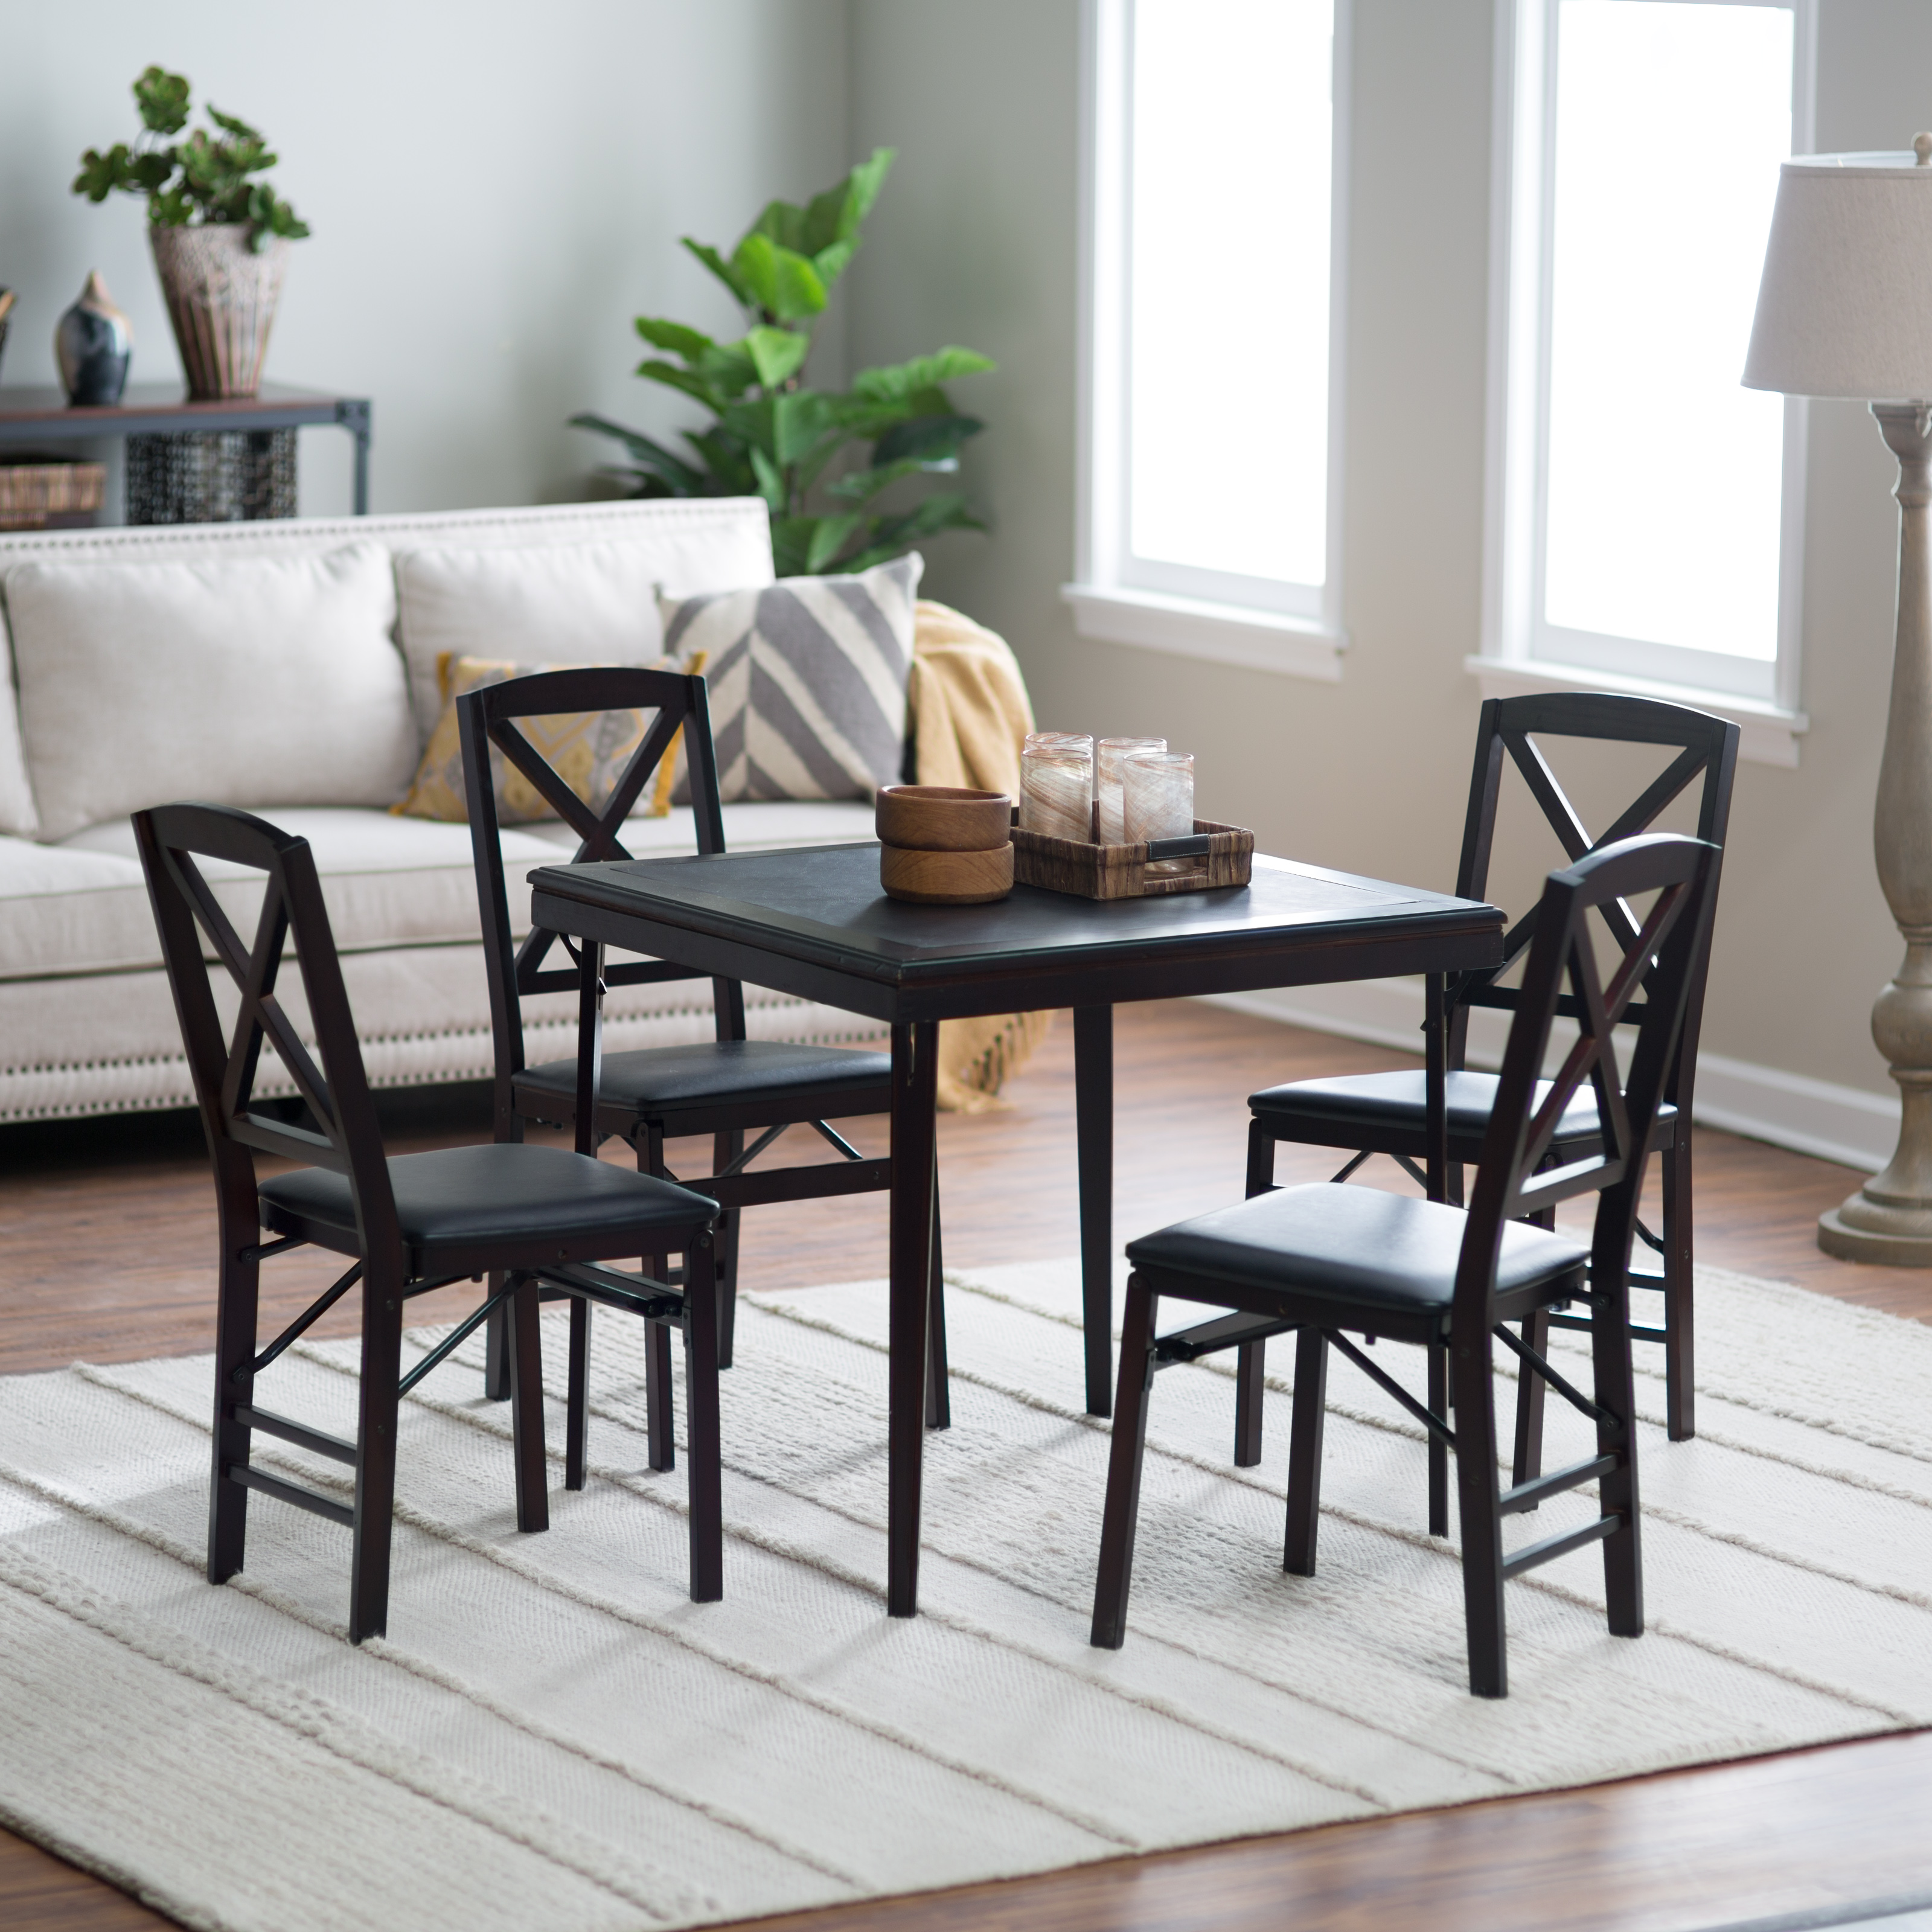 Costco Round Folding Table ... Wood Folding Card Table Set - Folding Tables & Chairs at Hayneedle